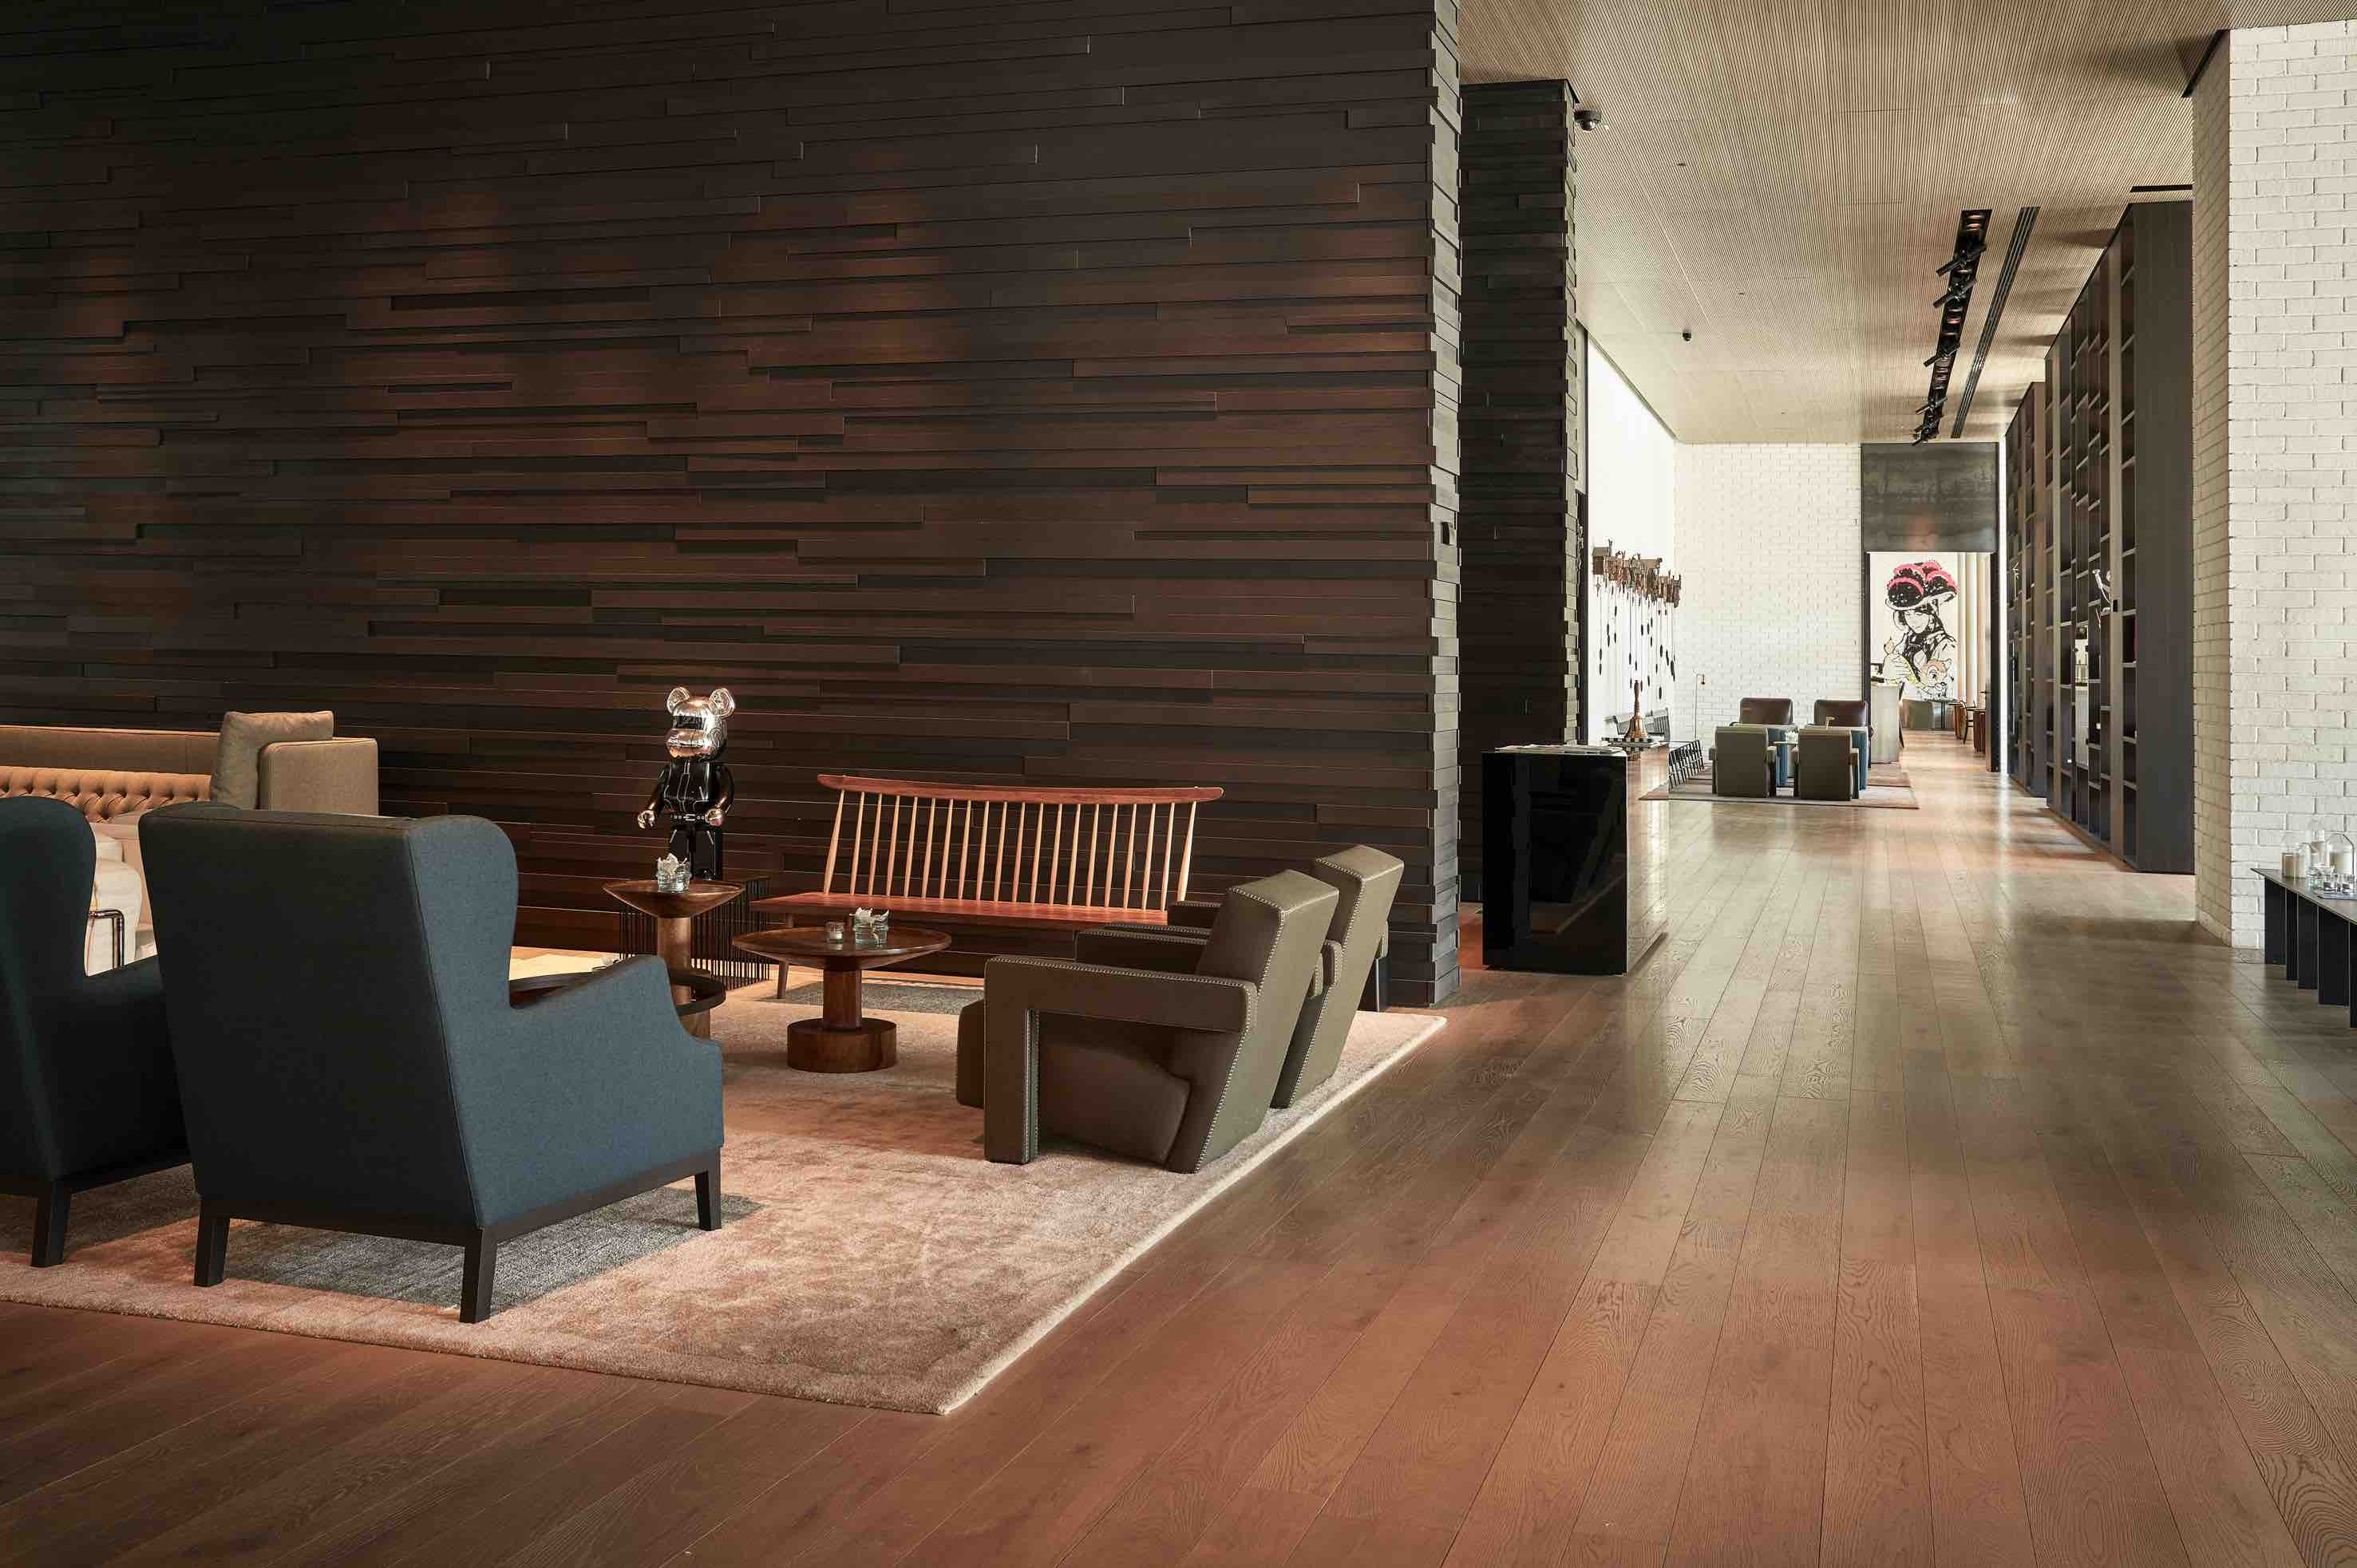 stylische Lobby des Roomer Hotels